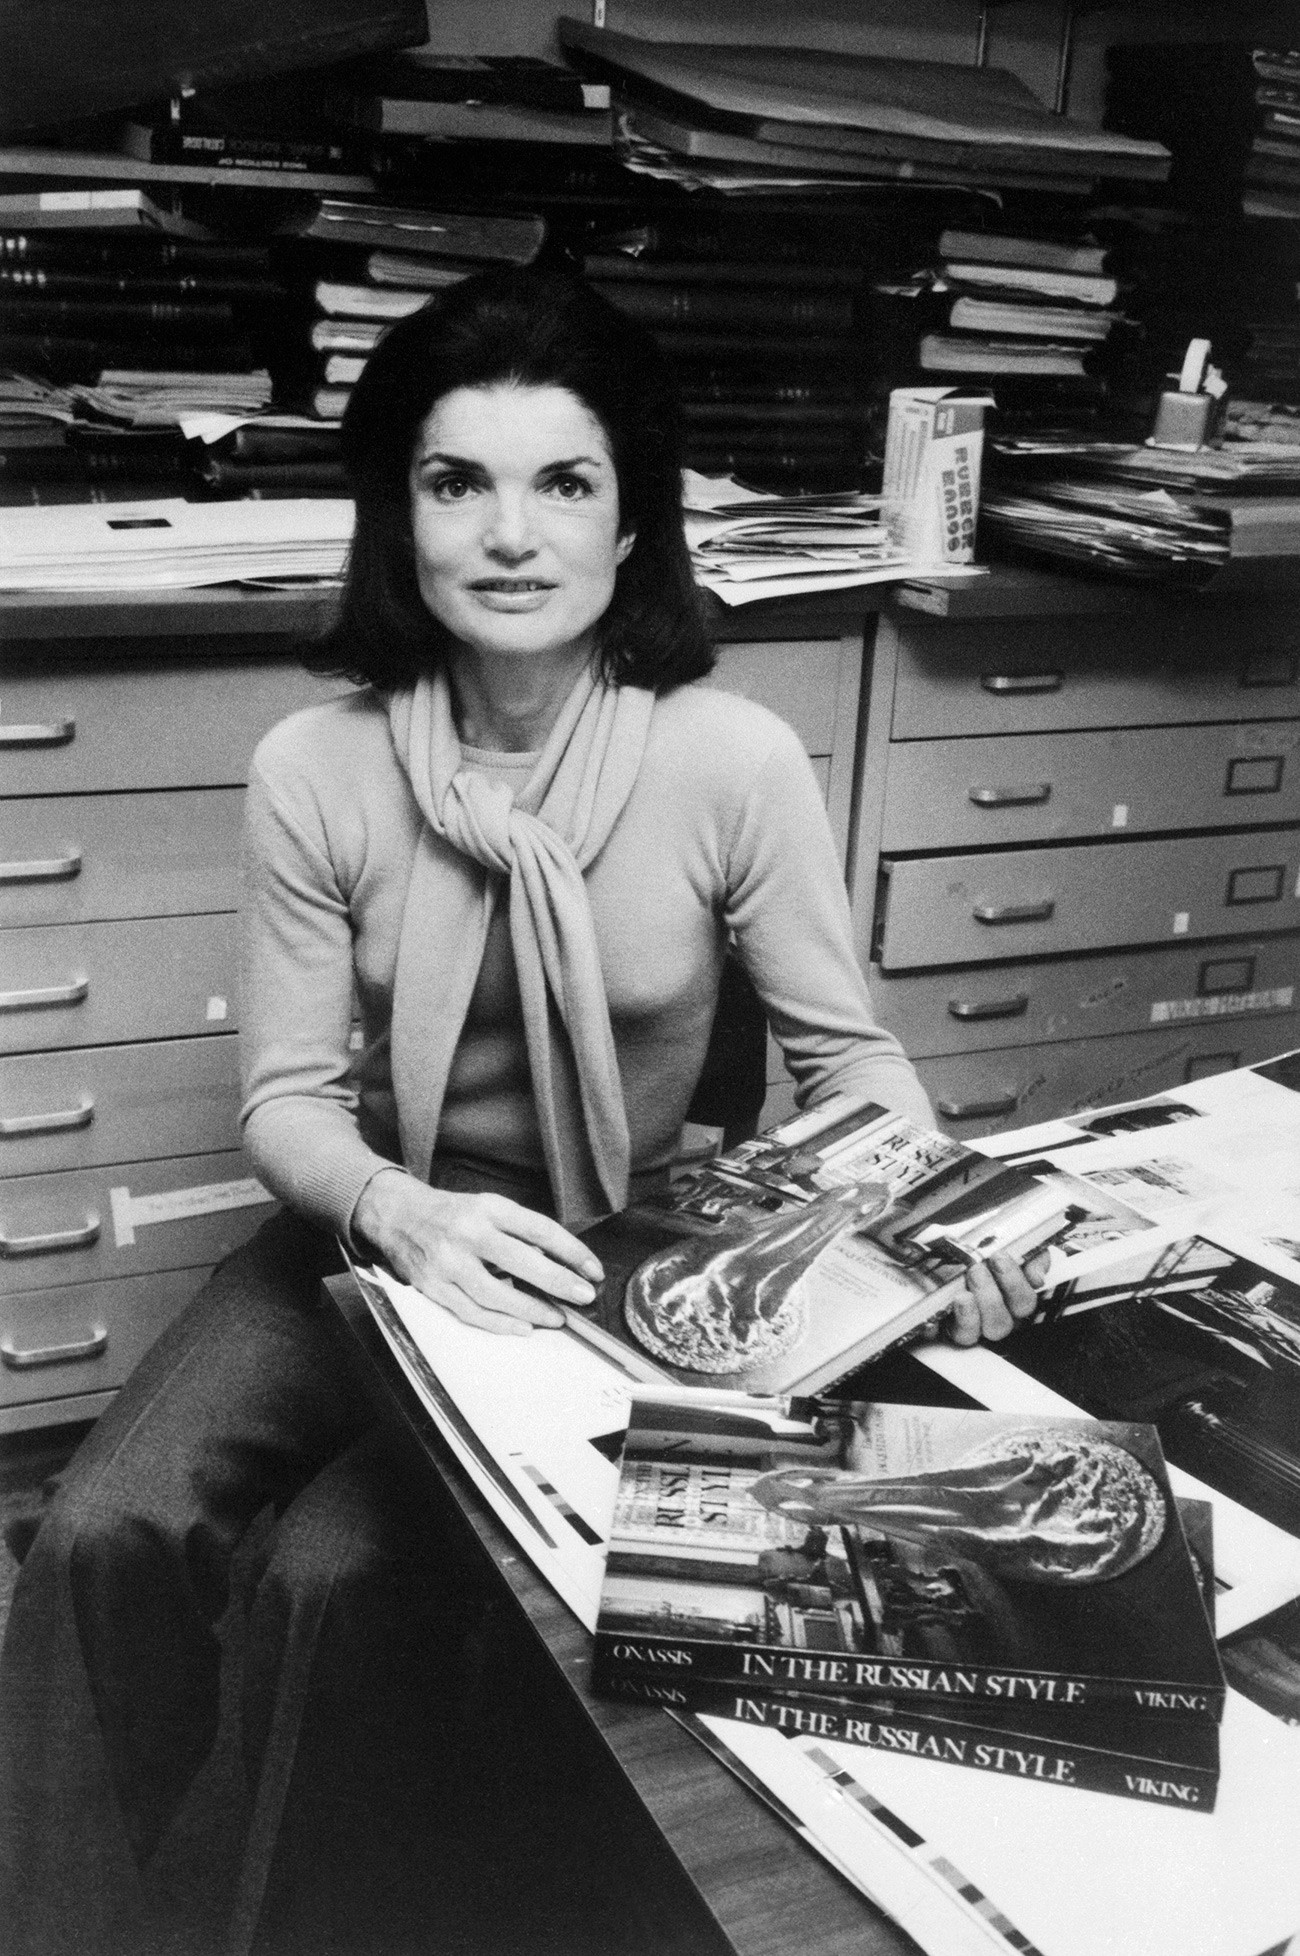 Jackie Kennedy Onassis en la editorial Viking Press durante la presentación de su libro 'In The Russian Style', 1976.